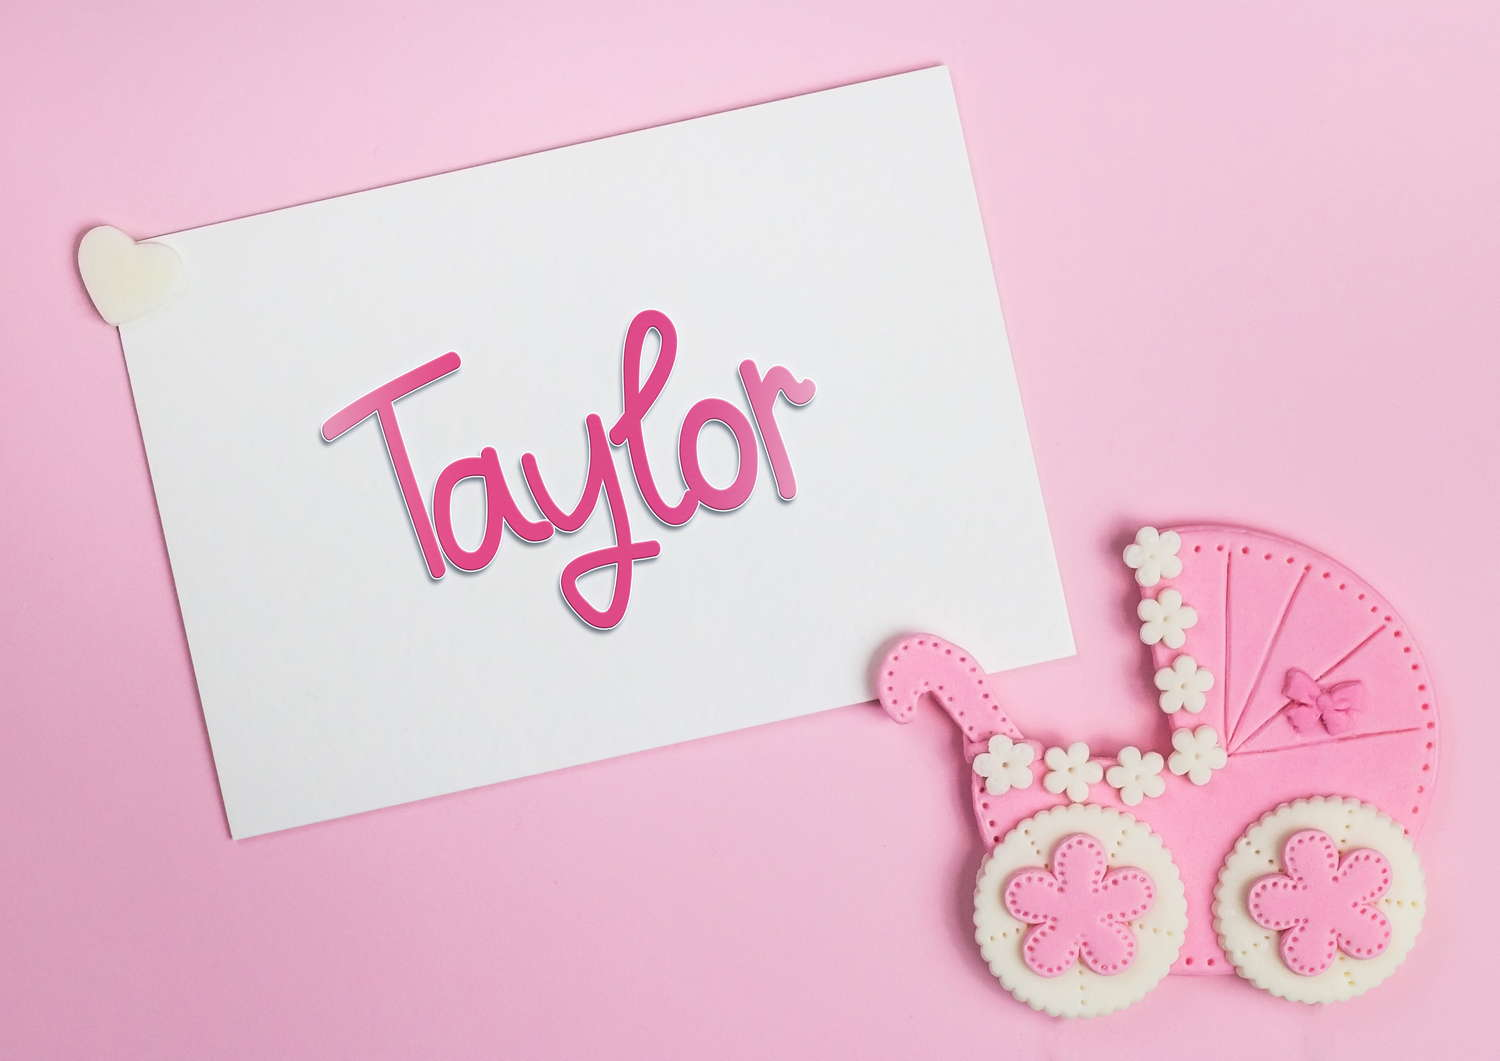 Taylor Baby Name